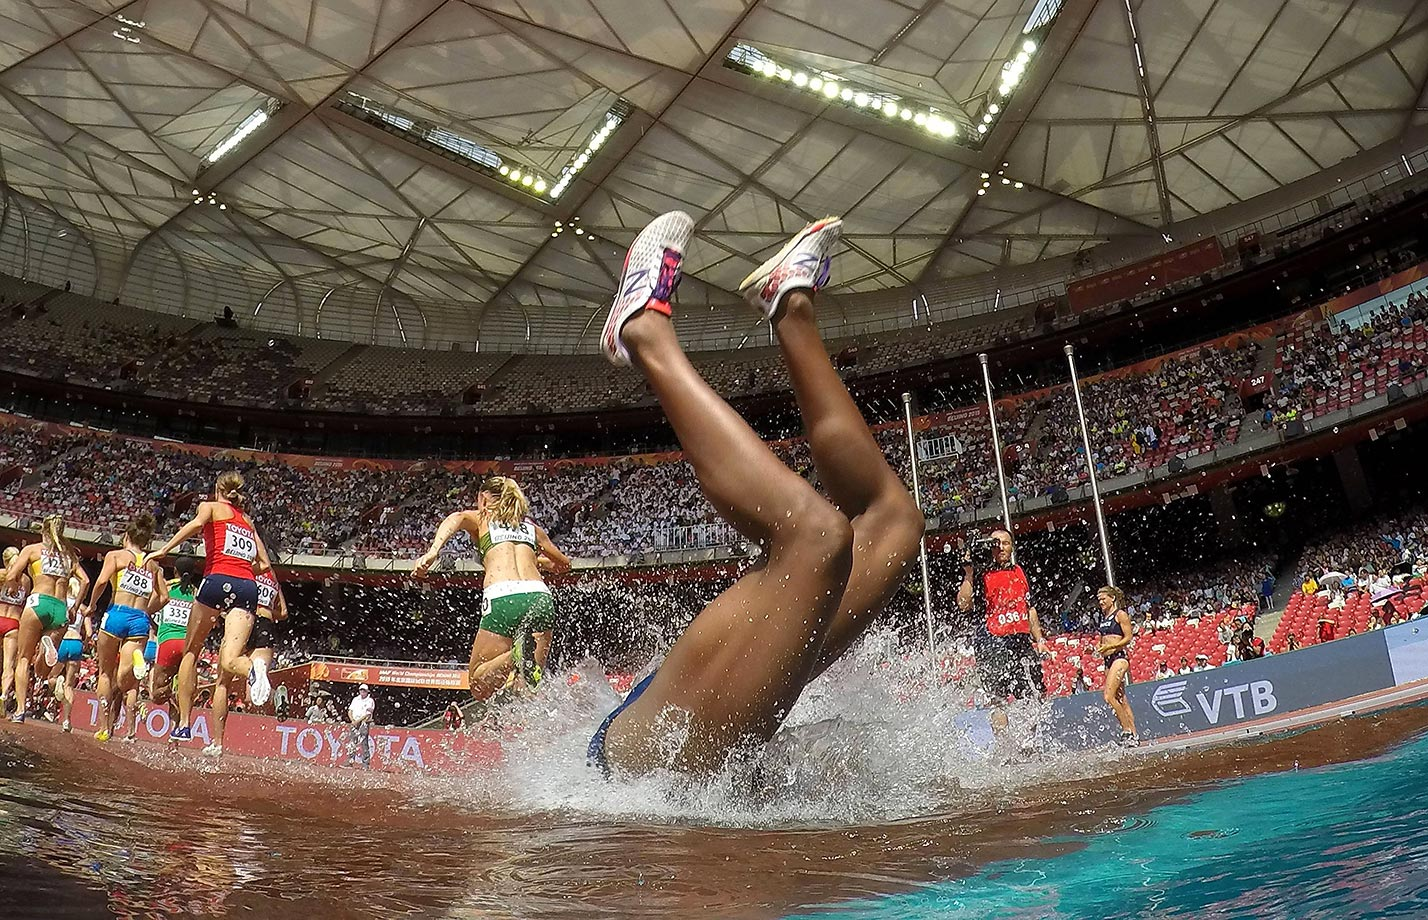 Rolanda Bell falls into the water during the 3,000 meter steeplechase at the 2015 IAAF World Championships in Beijing.